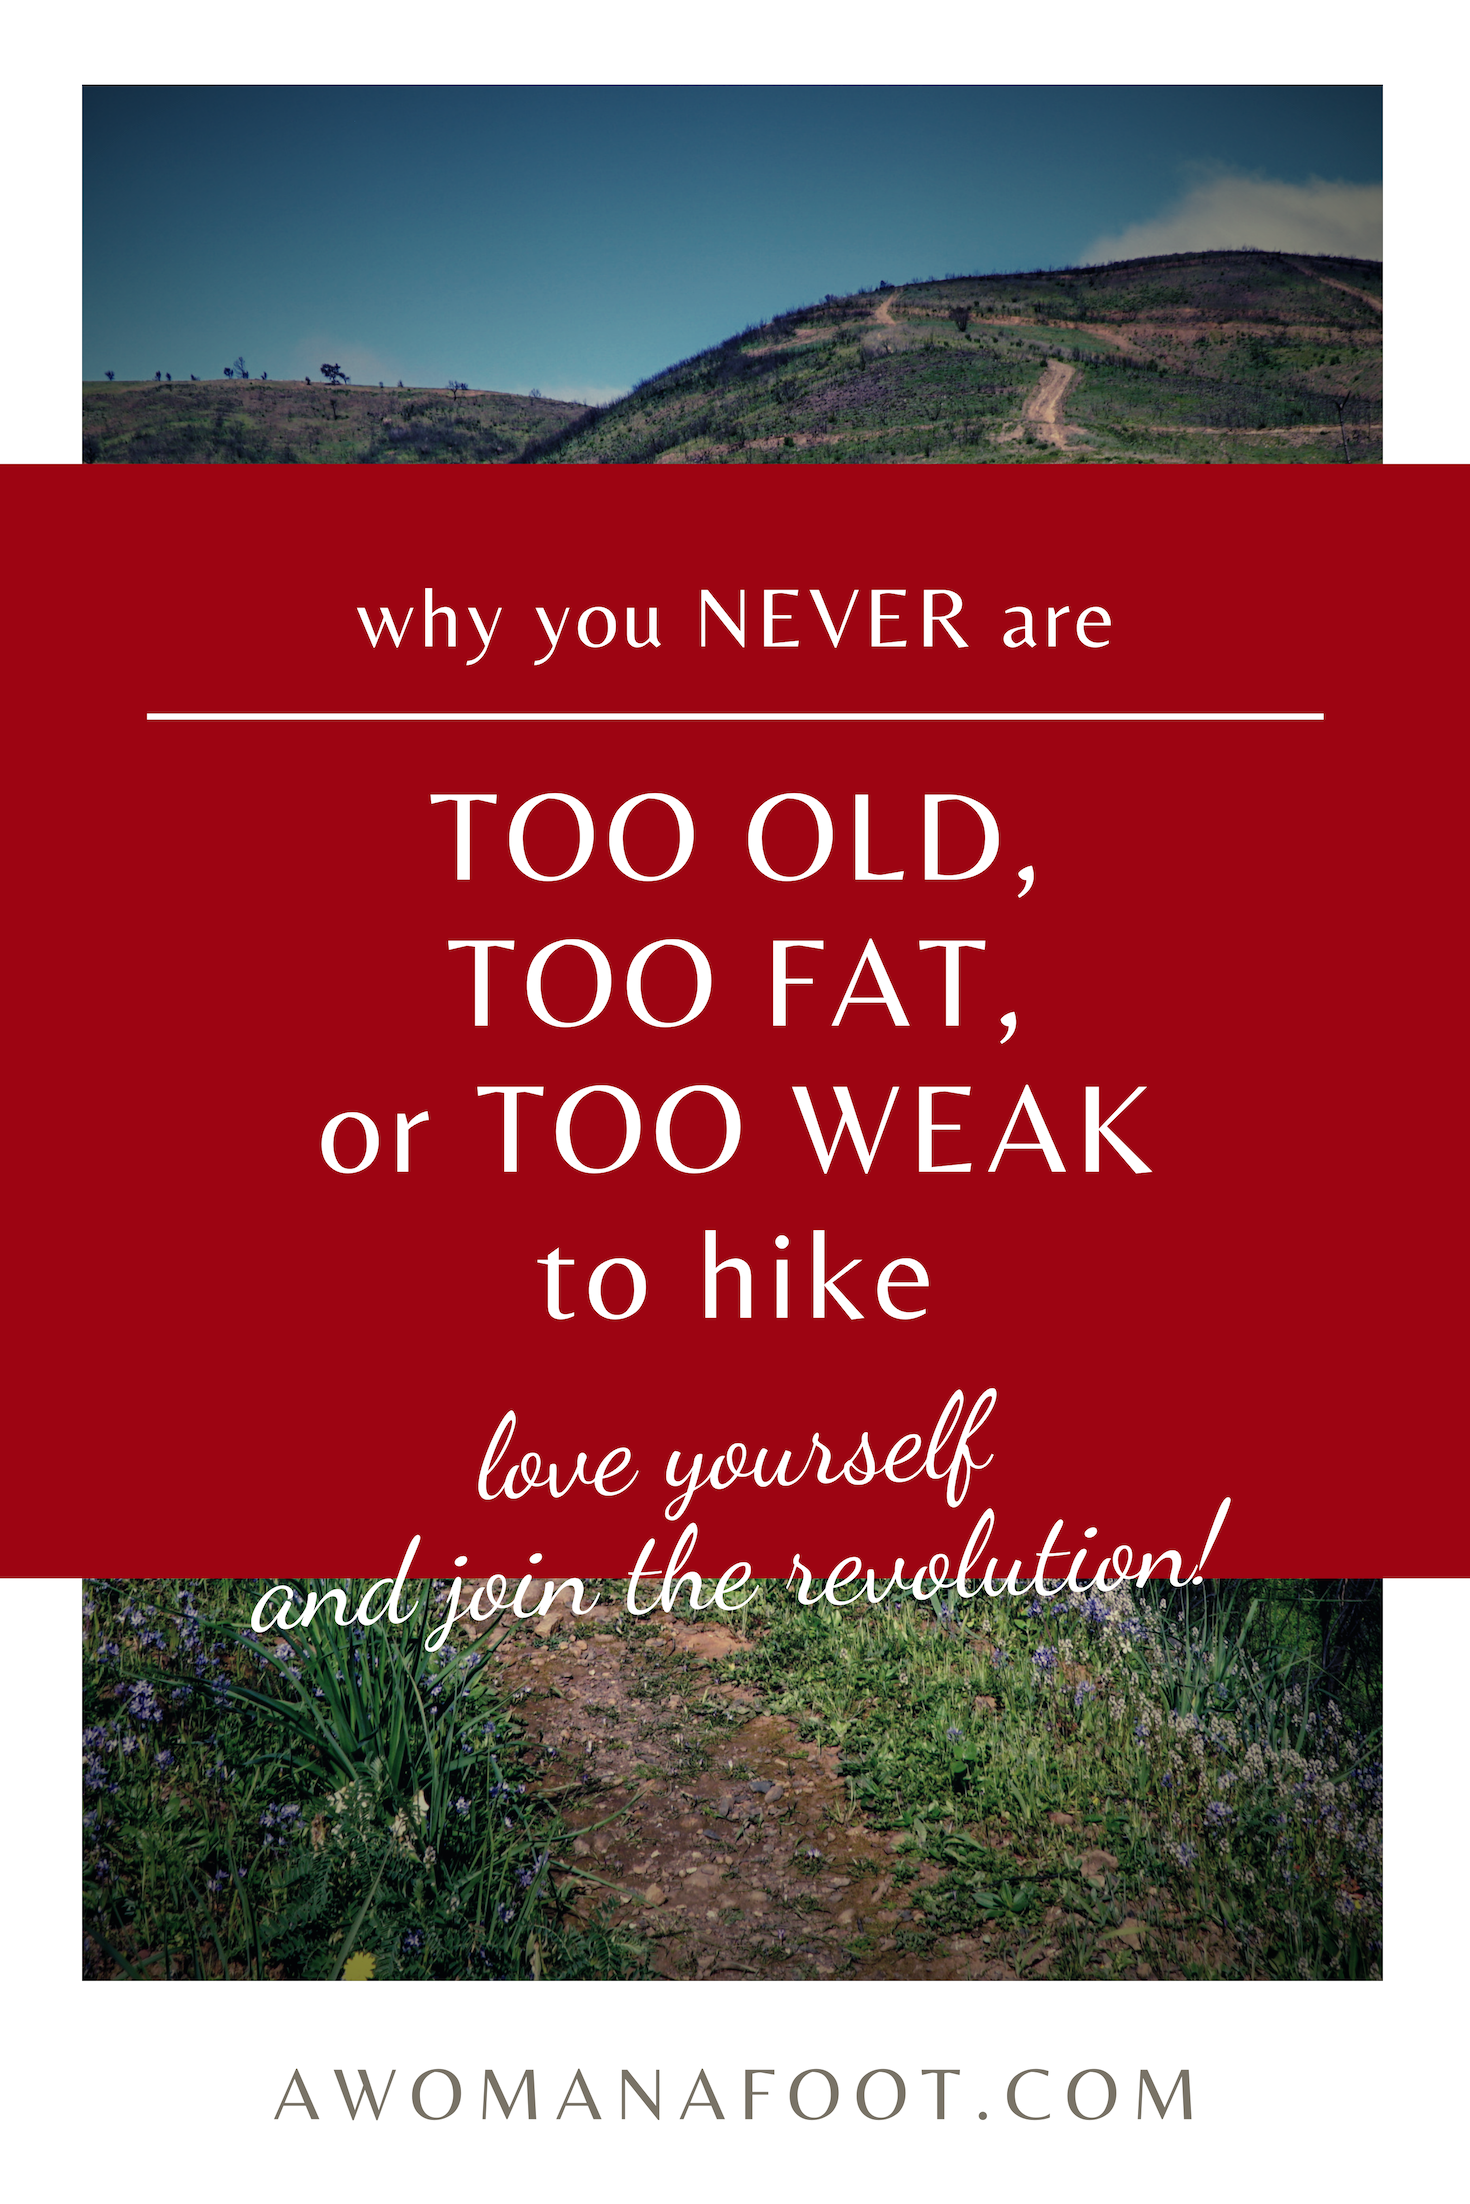 You DO belong in the Outdoors - no matter what others say. Enjoy the benefits of hiking no matter your size, gender, age, looks or socio-economic status. Join the revolution! | Health at every size | Body positive | Feminist Hiker | Hiking solo | Queer Hikers | Self acceptance | #hiking #feminist #BodyPositive #WomenHikers | awomanafoot.com